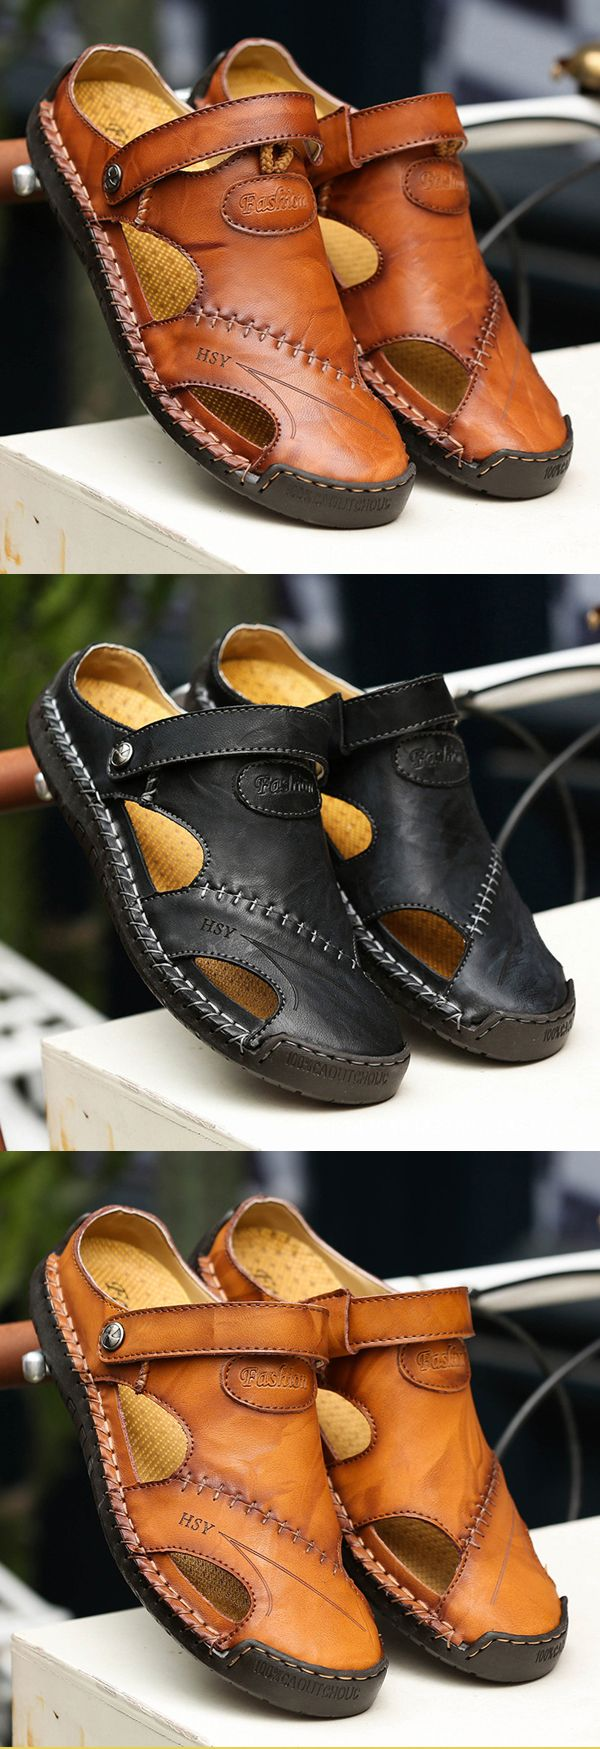 49 OFF Mens Soft Hand shoescasual Stitching Leather Sandals uF3lc5TK1J